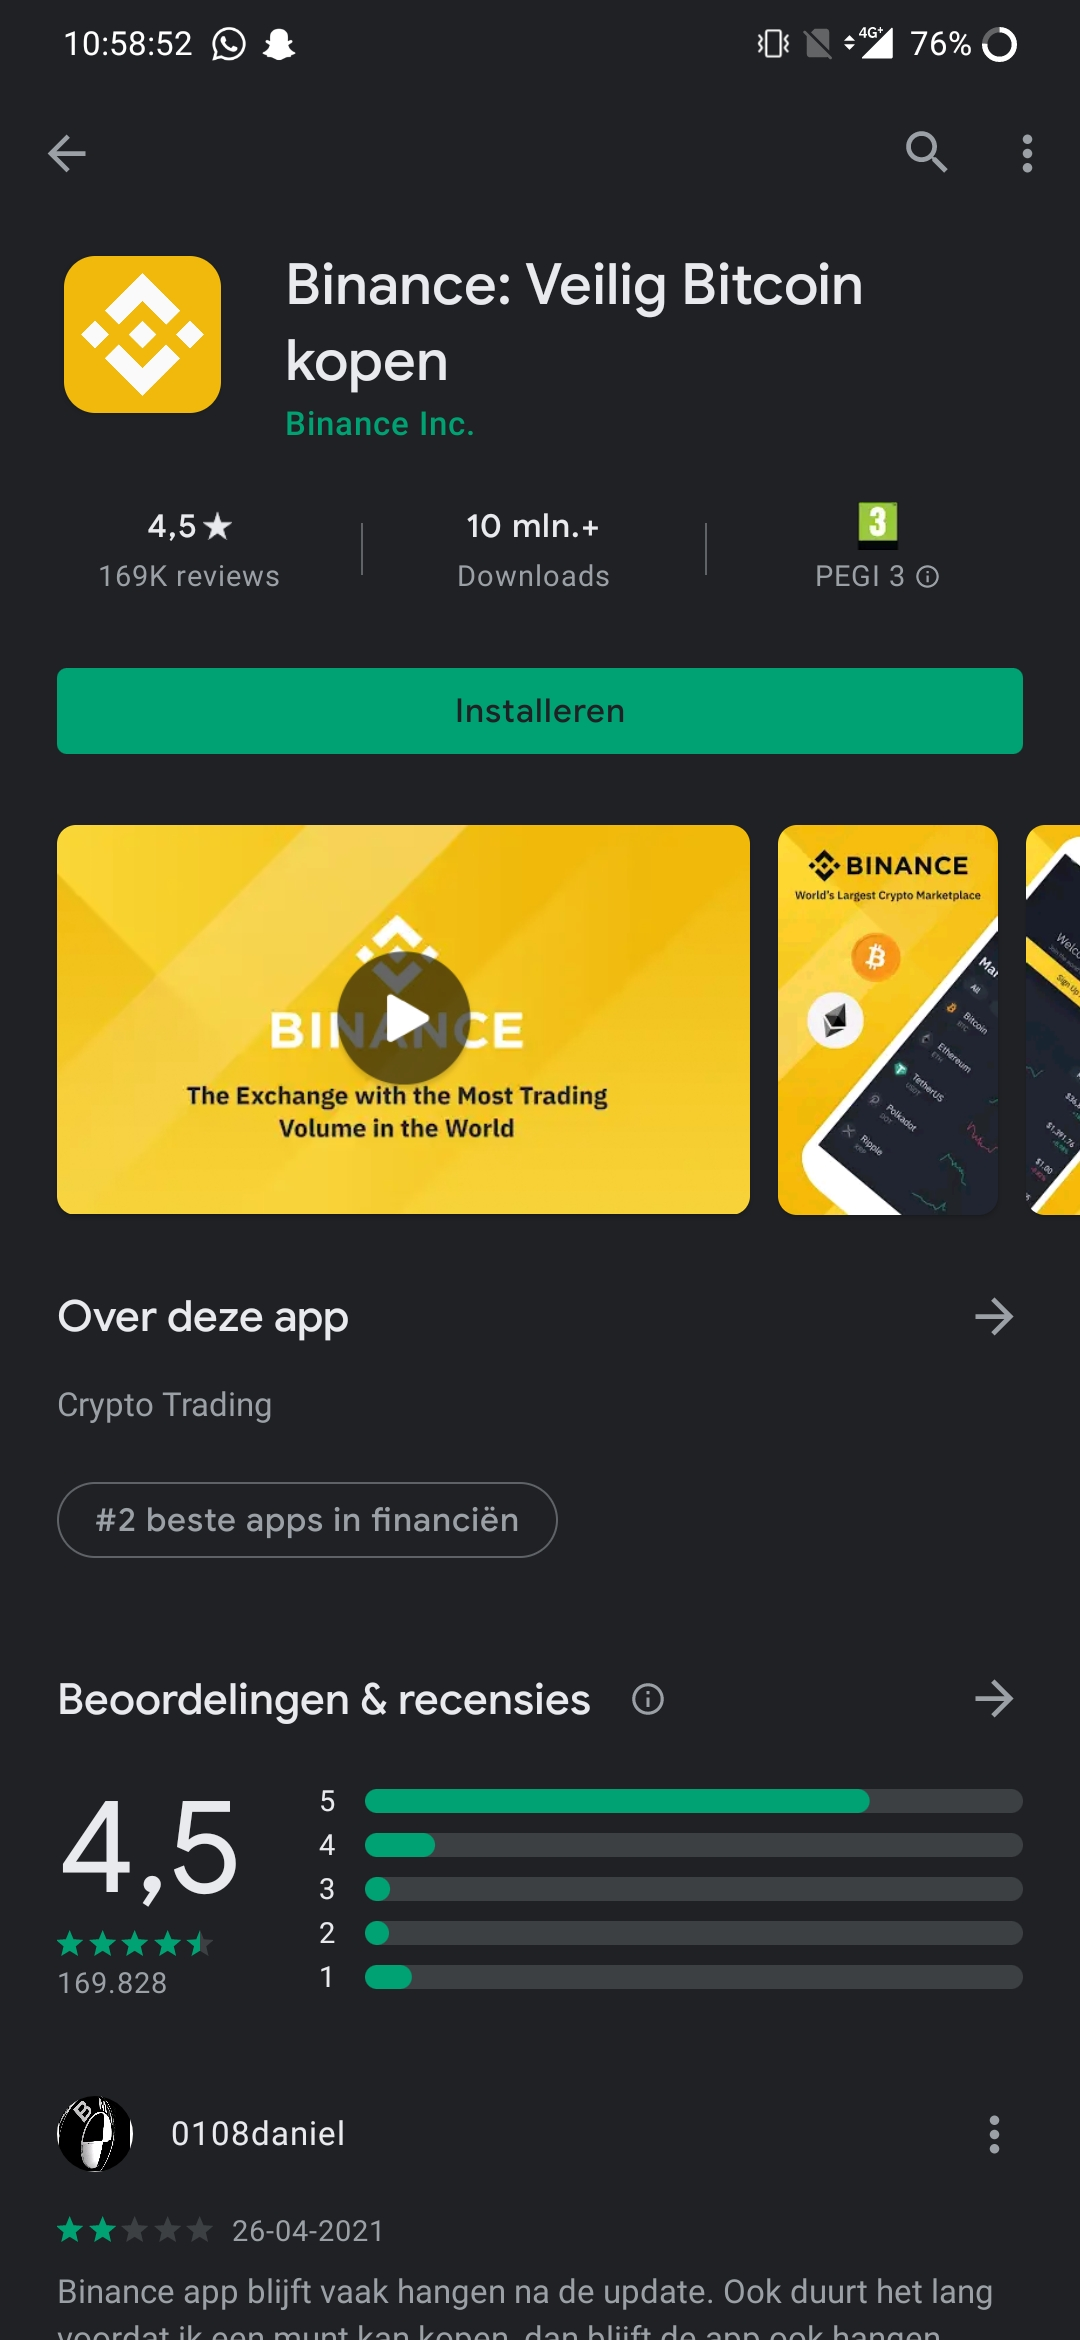 Binance review - Binance app